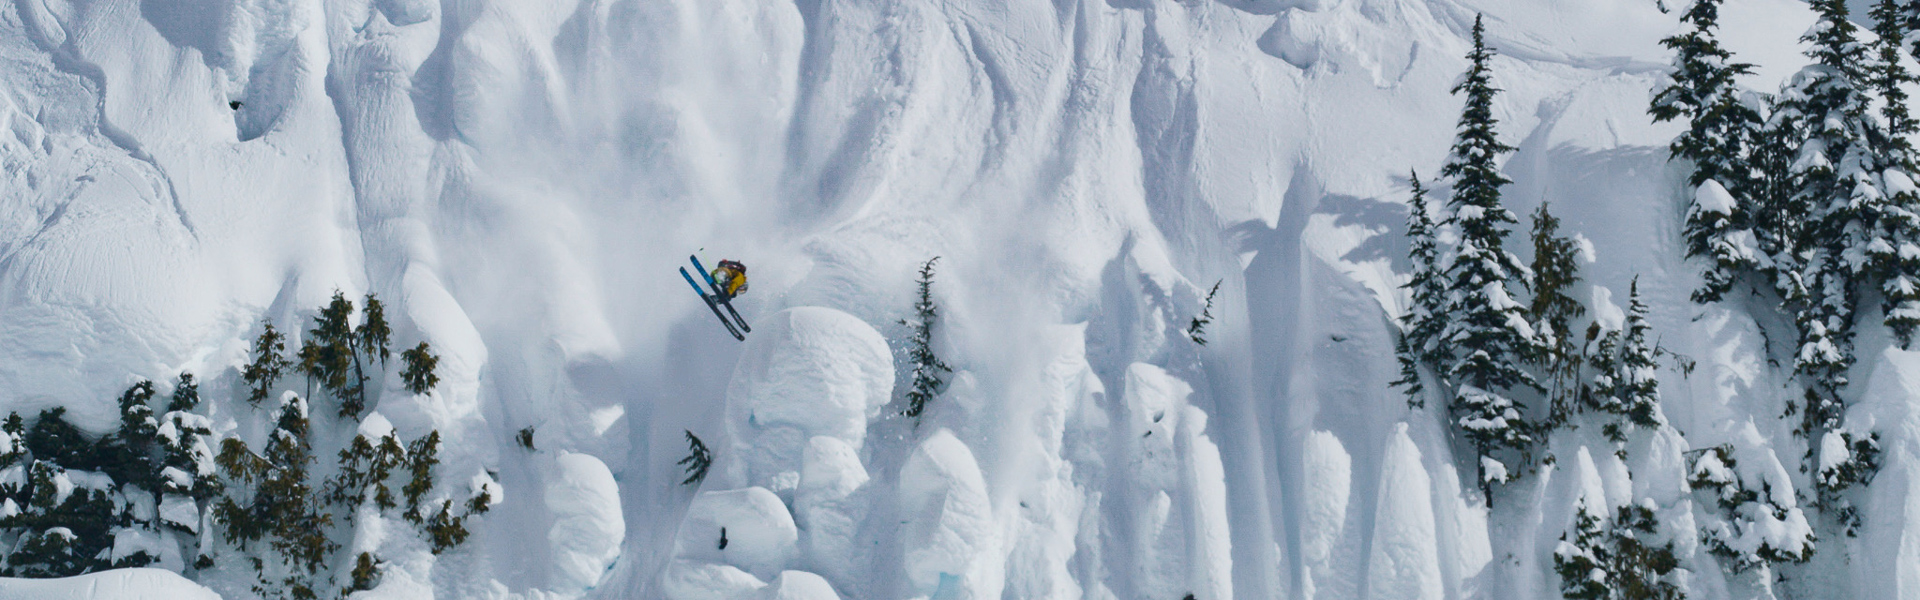 Sam Kuch – best skier in the world?